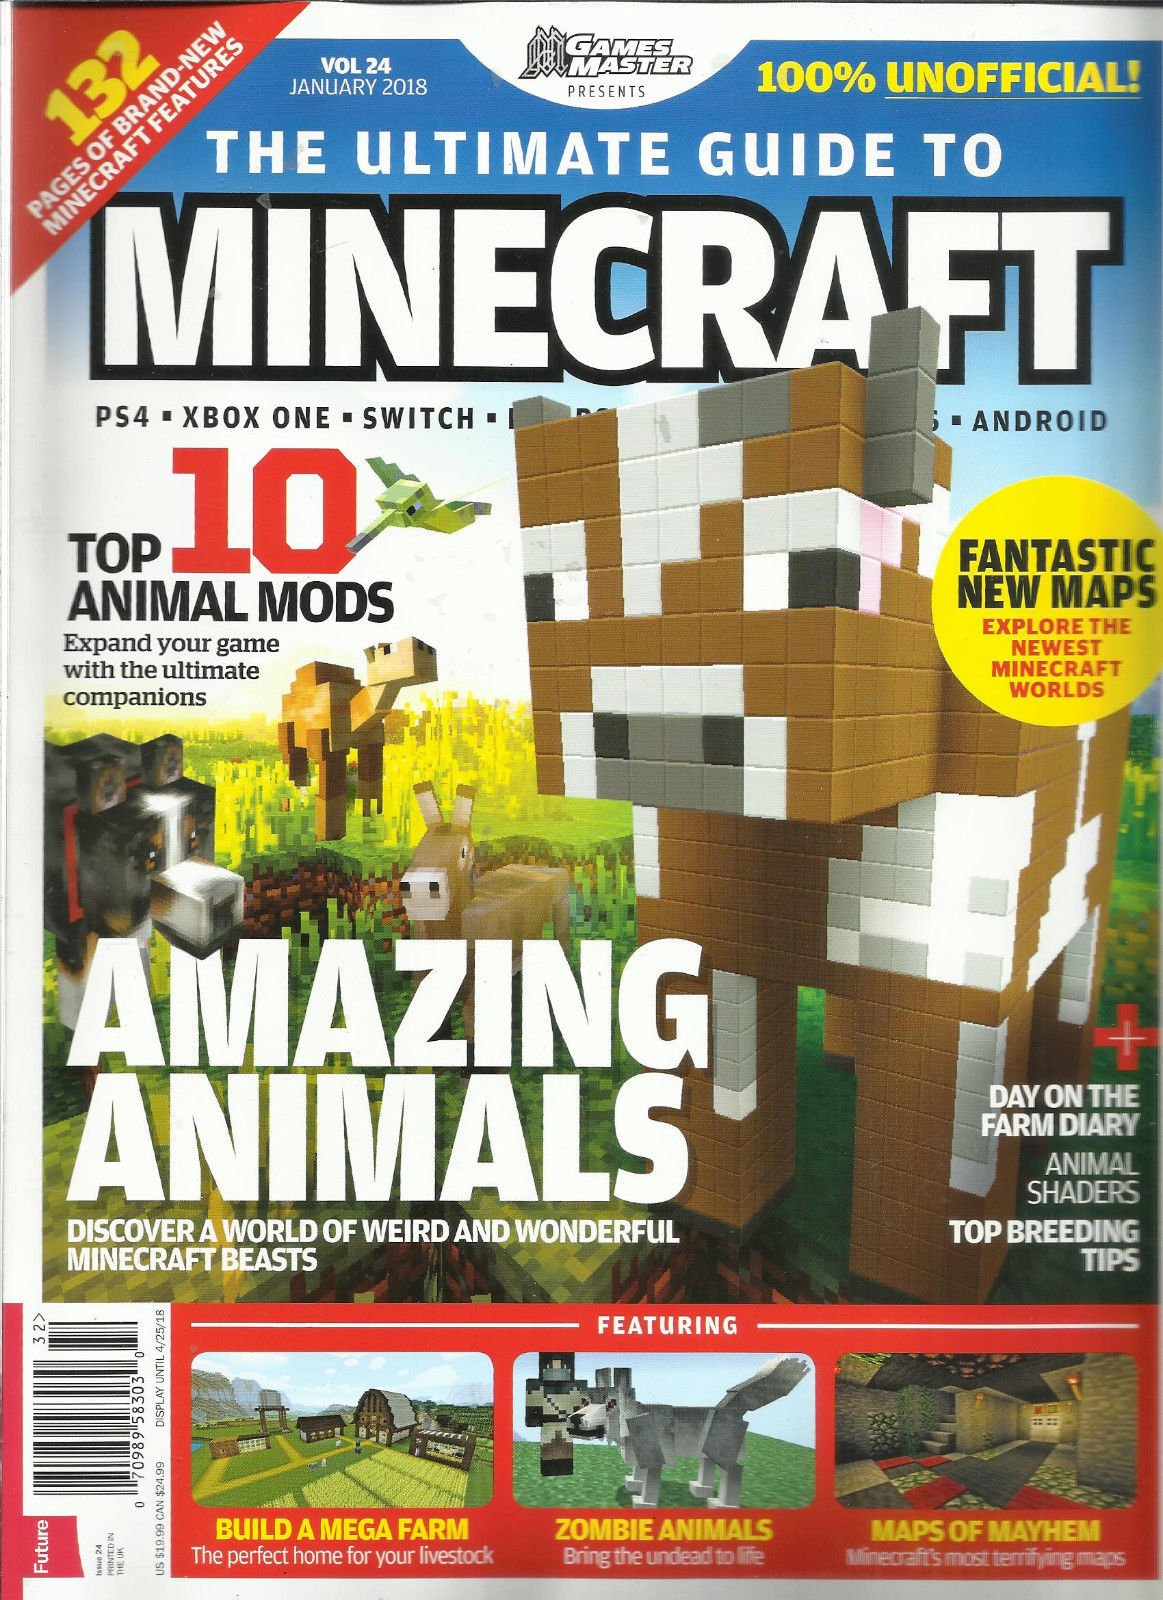 GAMES MASTER PRESENT, THE ULTIMATE GUIDE TO MINECRAFT, JANUARY, 2018 VOL. 24